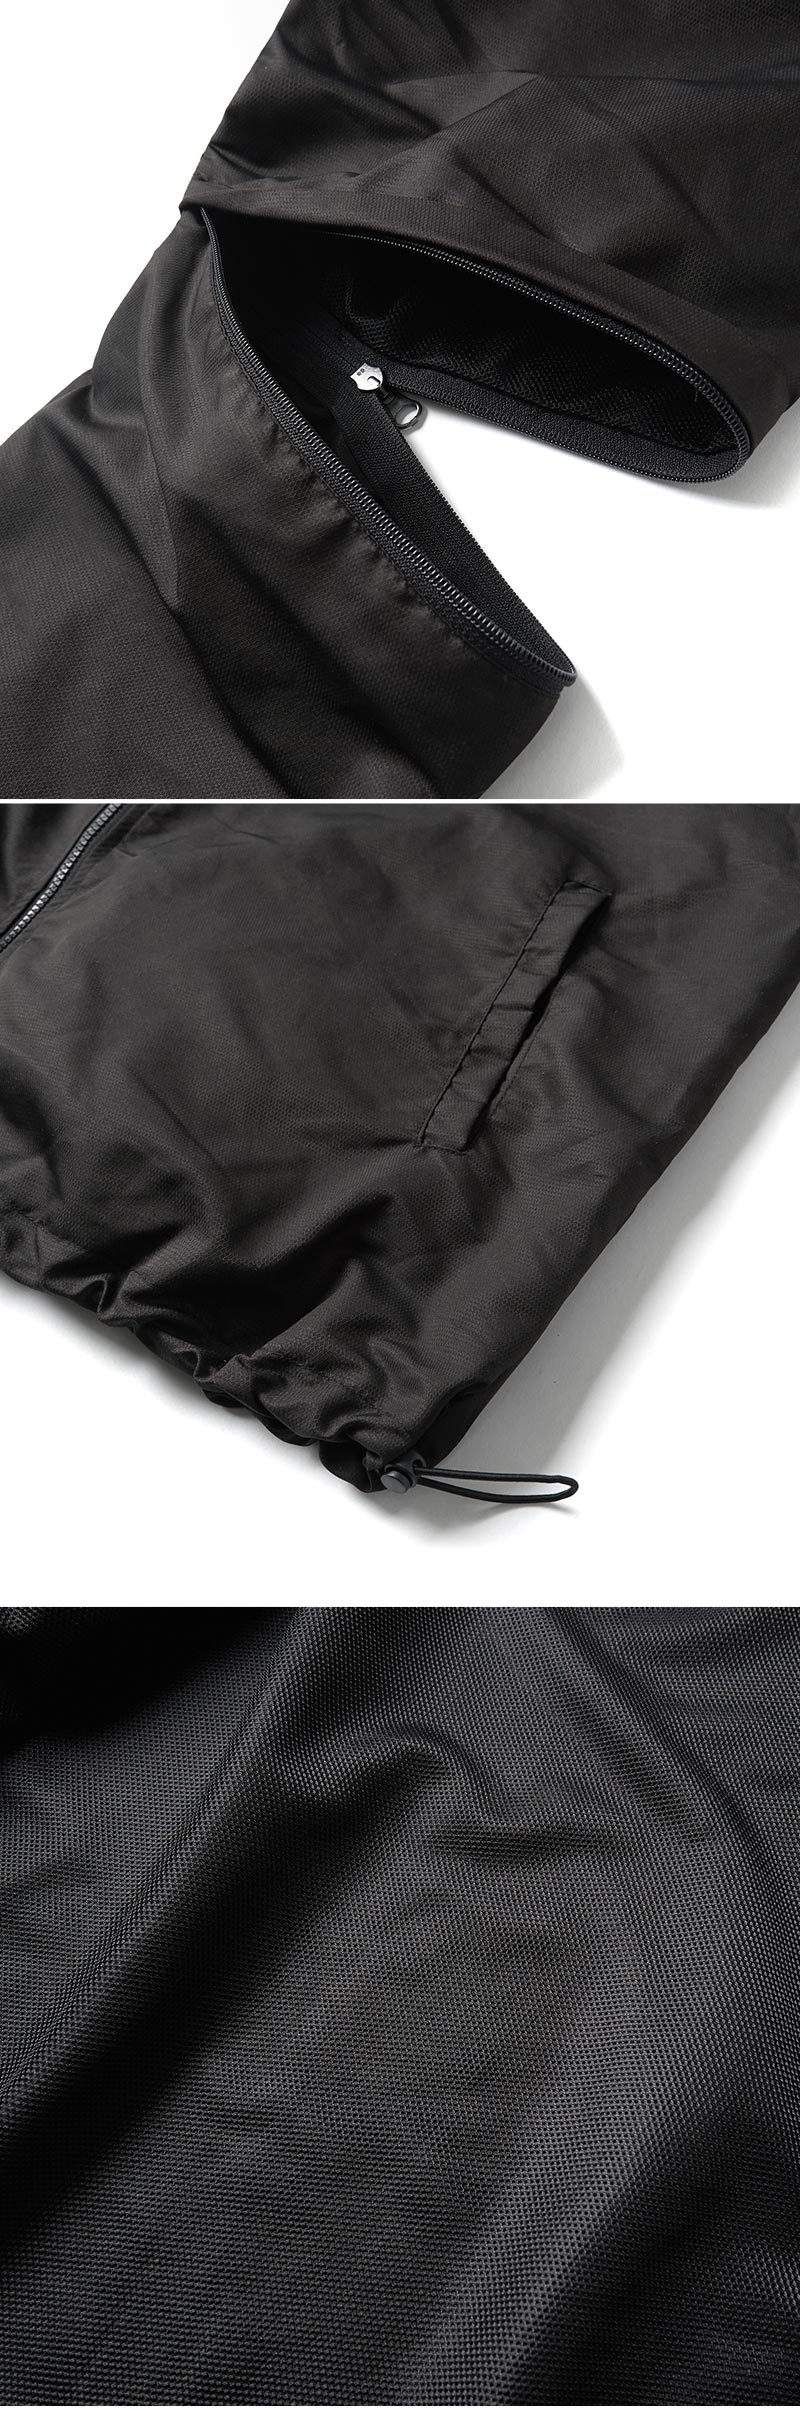 ZIP TRAINING JACKET(BLACK)_CTONPJK06UC6